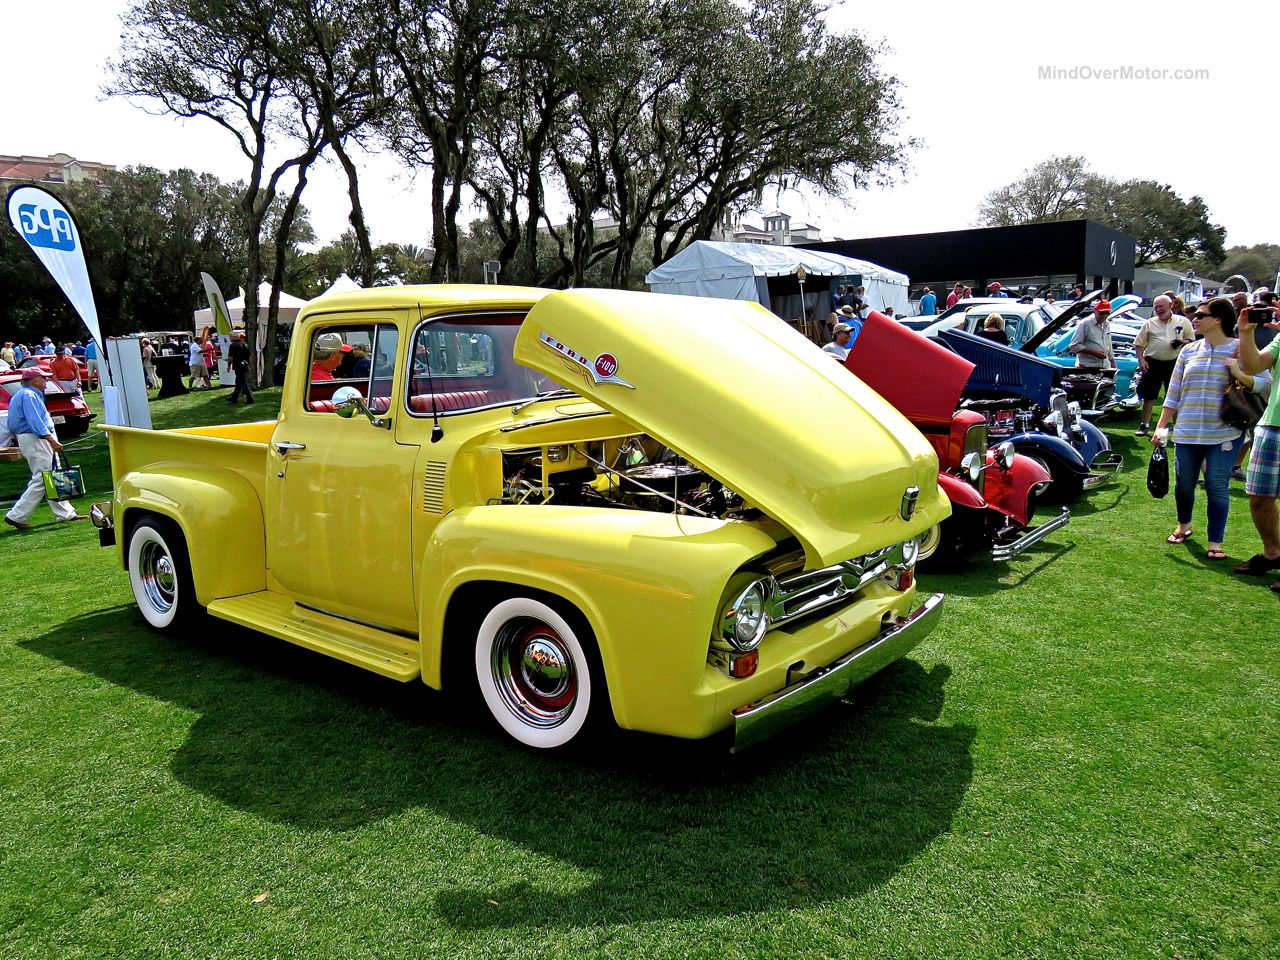 Custom Ford F-100 at Amelia Island 6